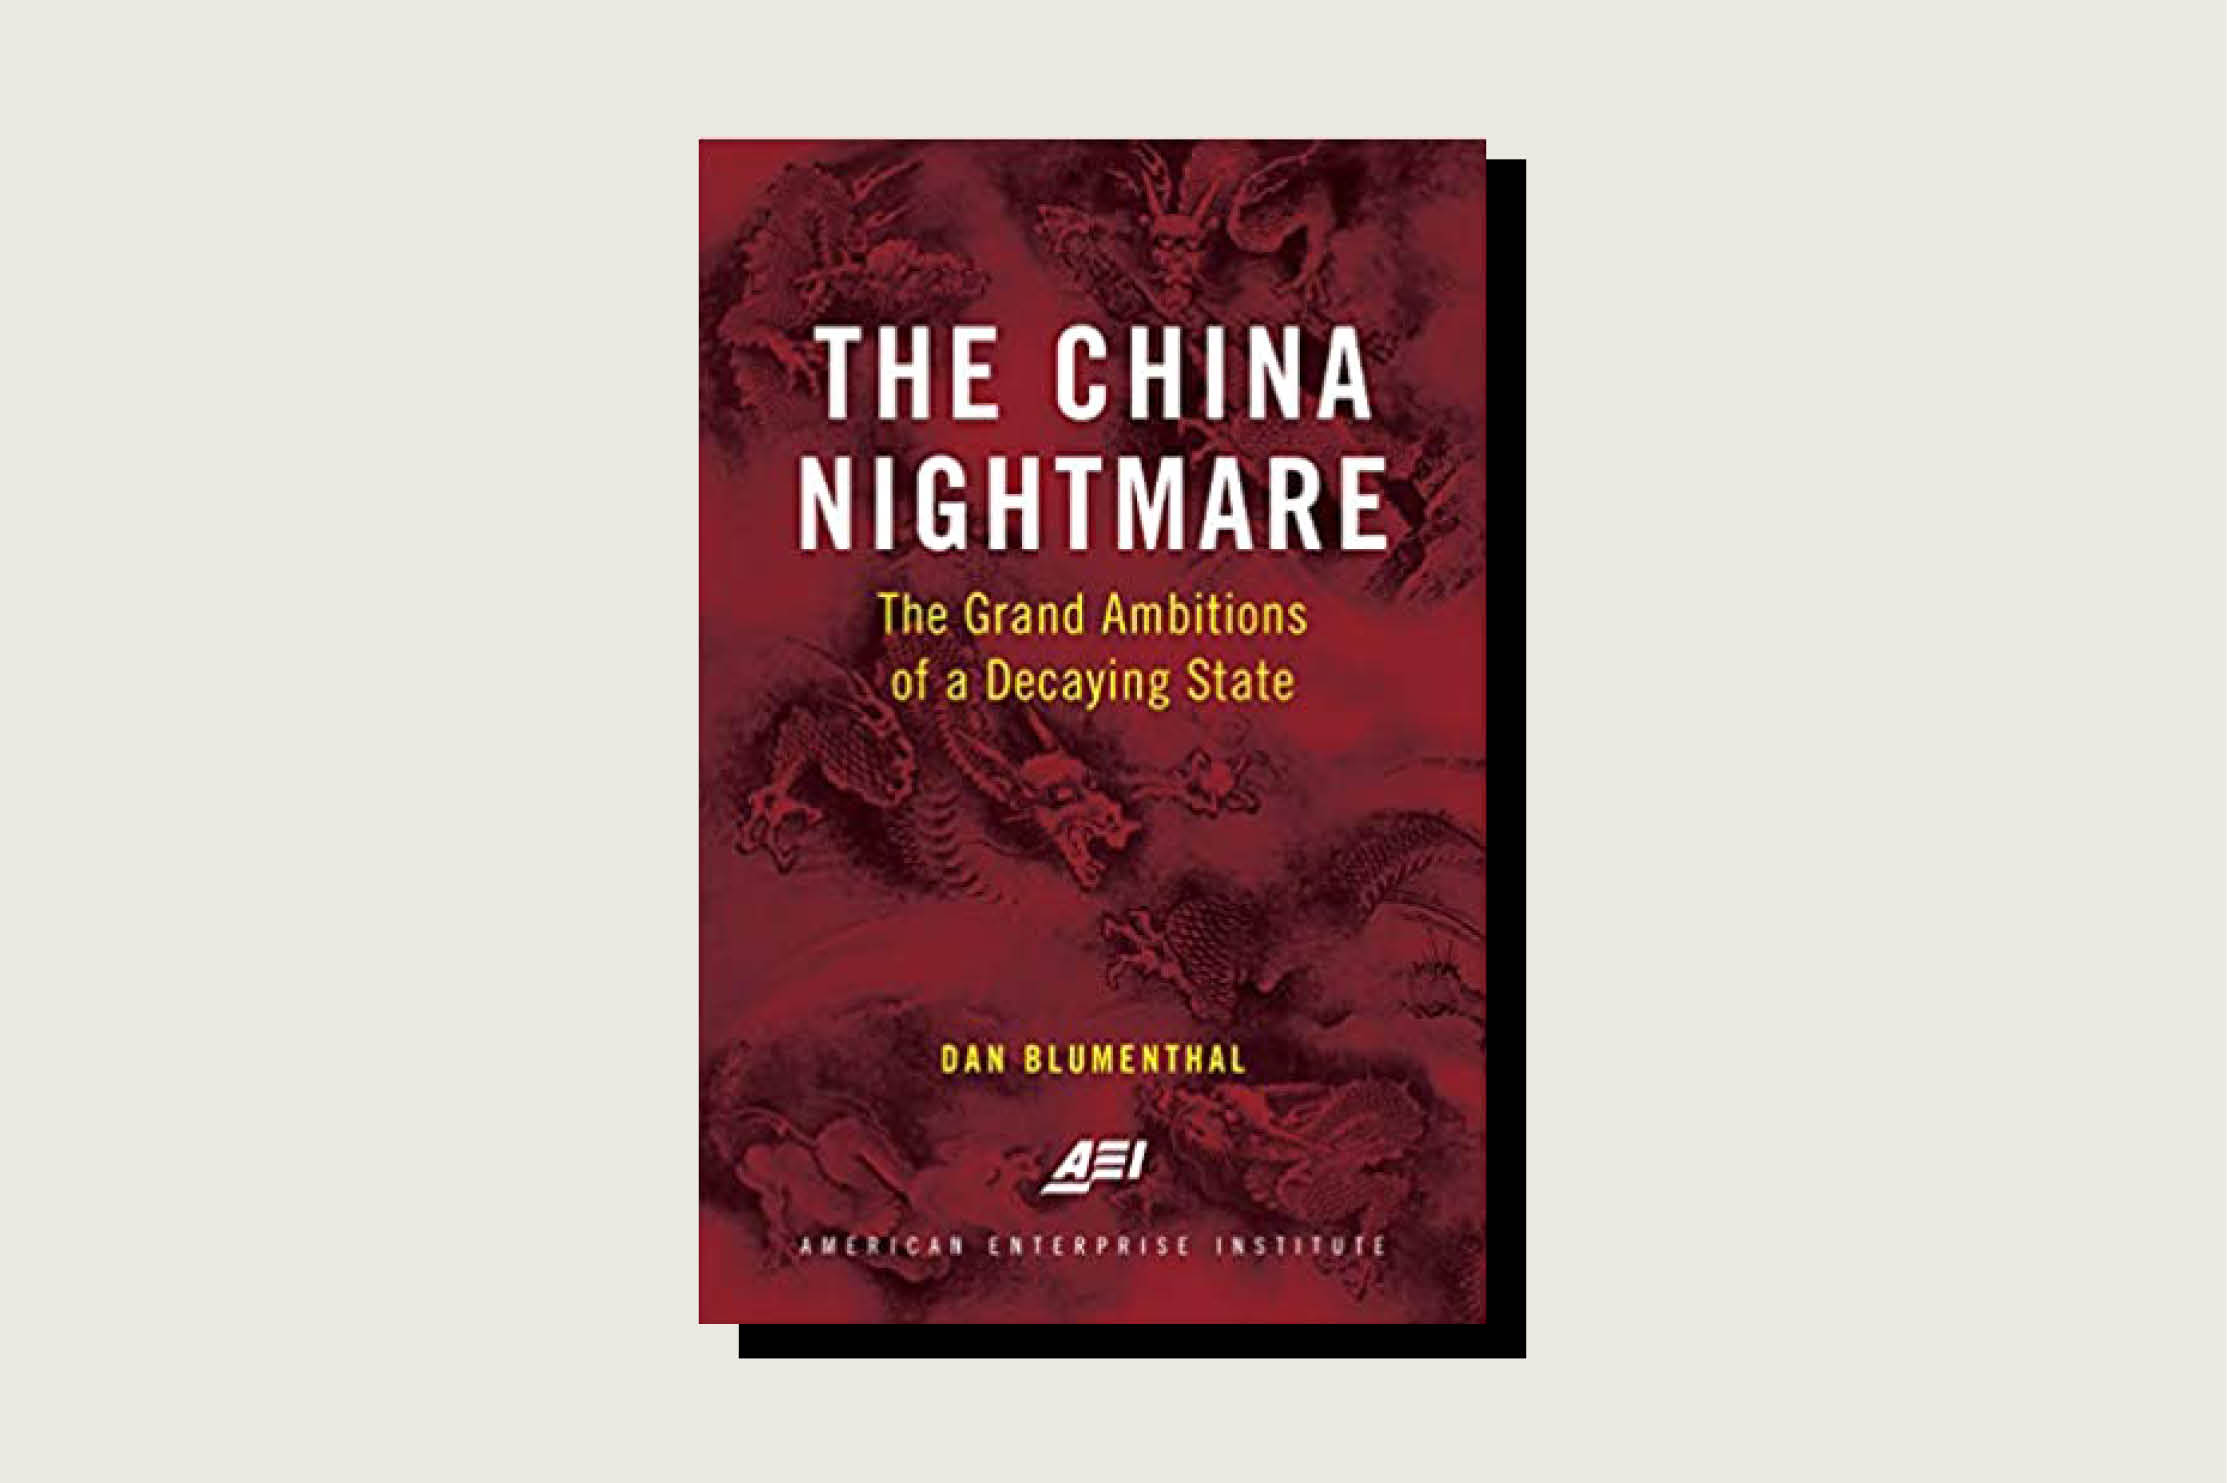 The China Nightmare: The Grand Ambitions of a Decaying State, Dan Blumenthal, AEI Press, 176 pp., , October 2020